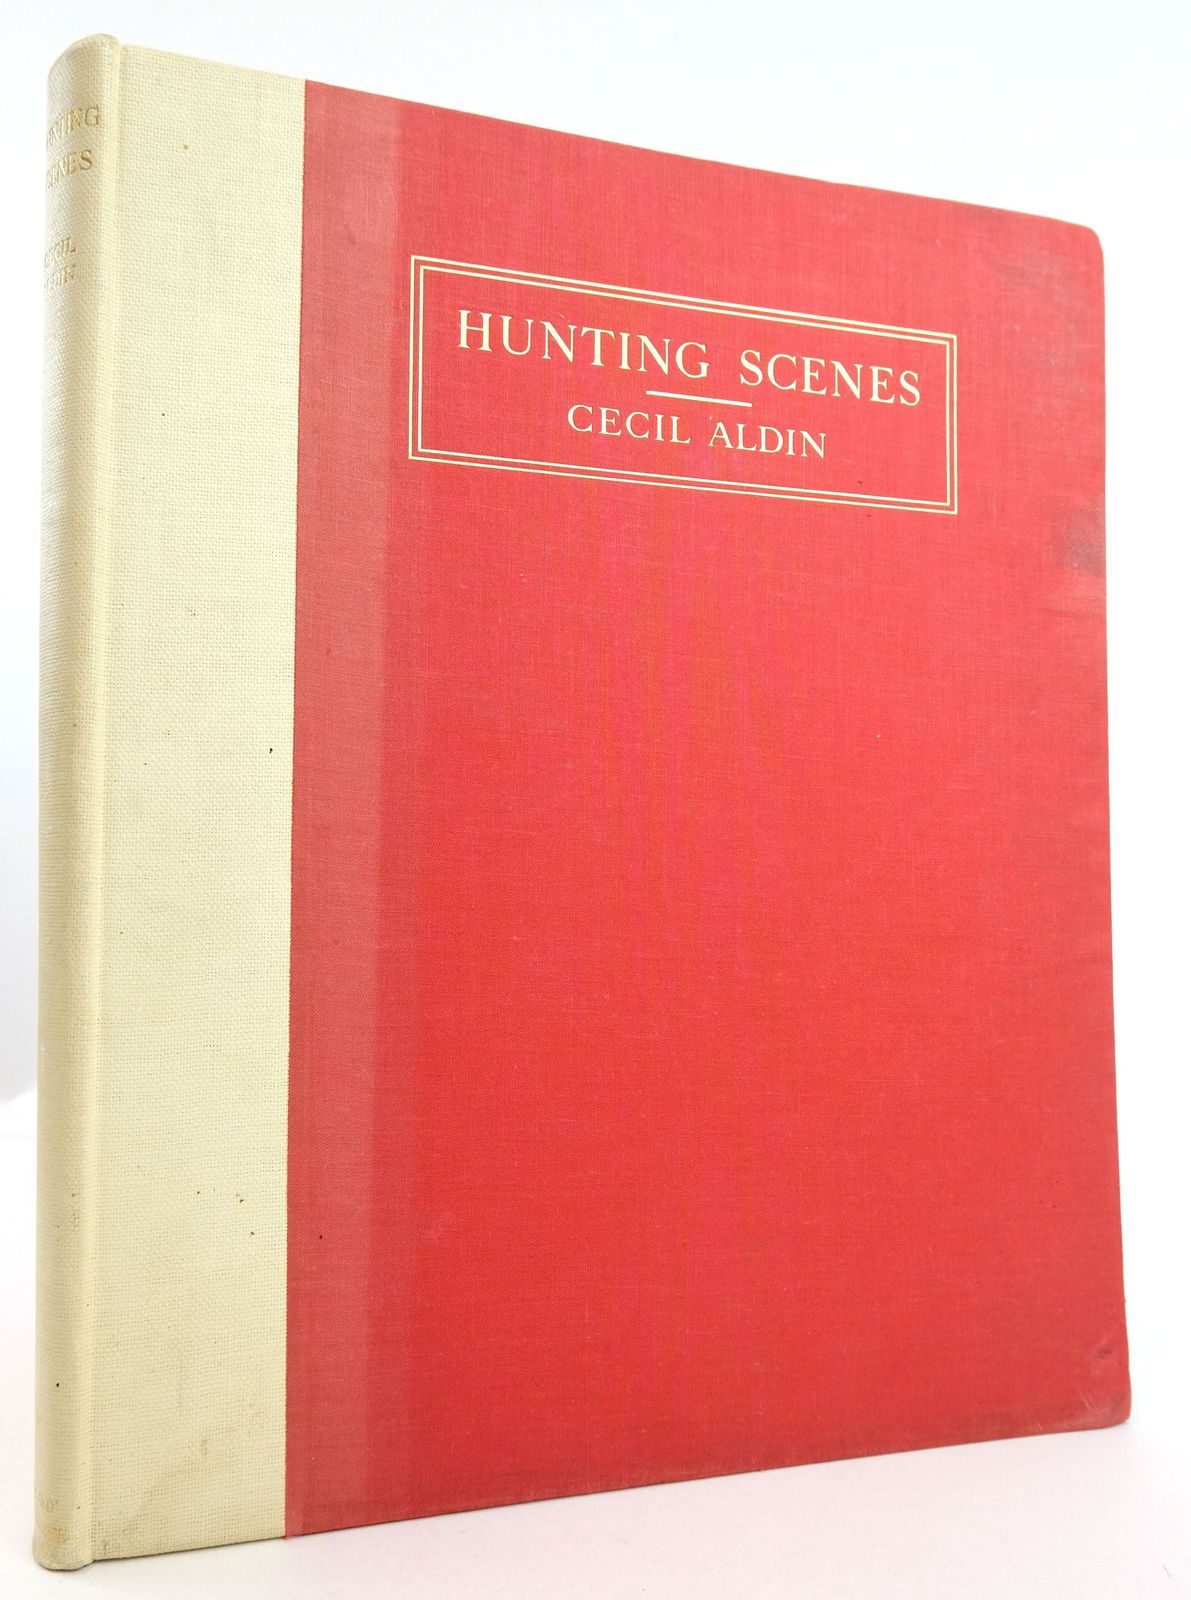 Photo of HUNTING SCENES written by Sabretache,  illustrated by Aldin, Cecil published by Eyre & Spottiswoode (STOCK CODE: 1819649)  for sale by Stella & Rose's Books